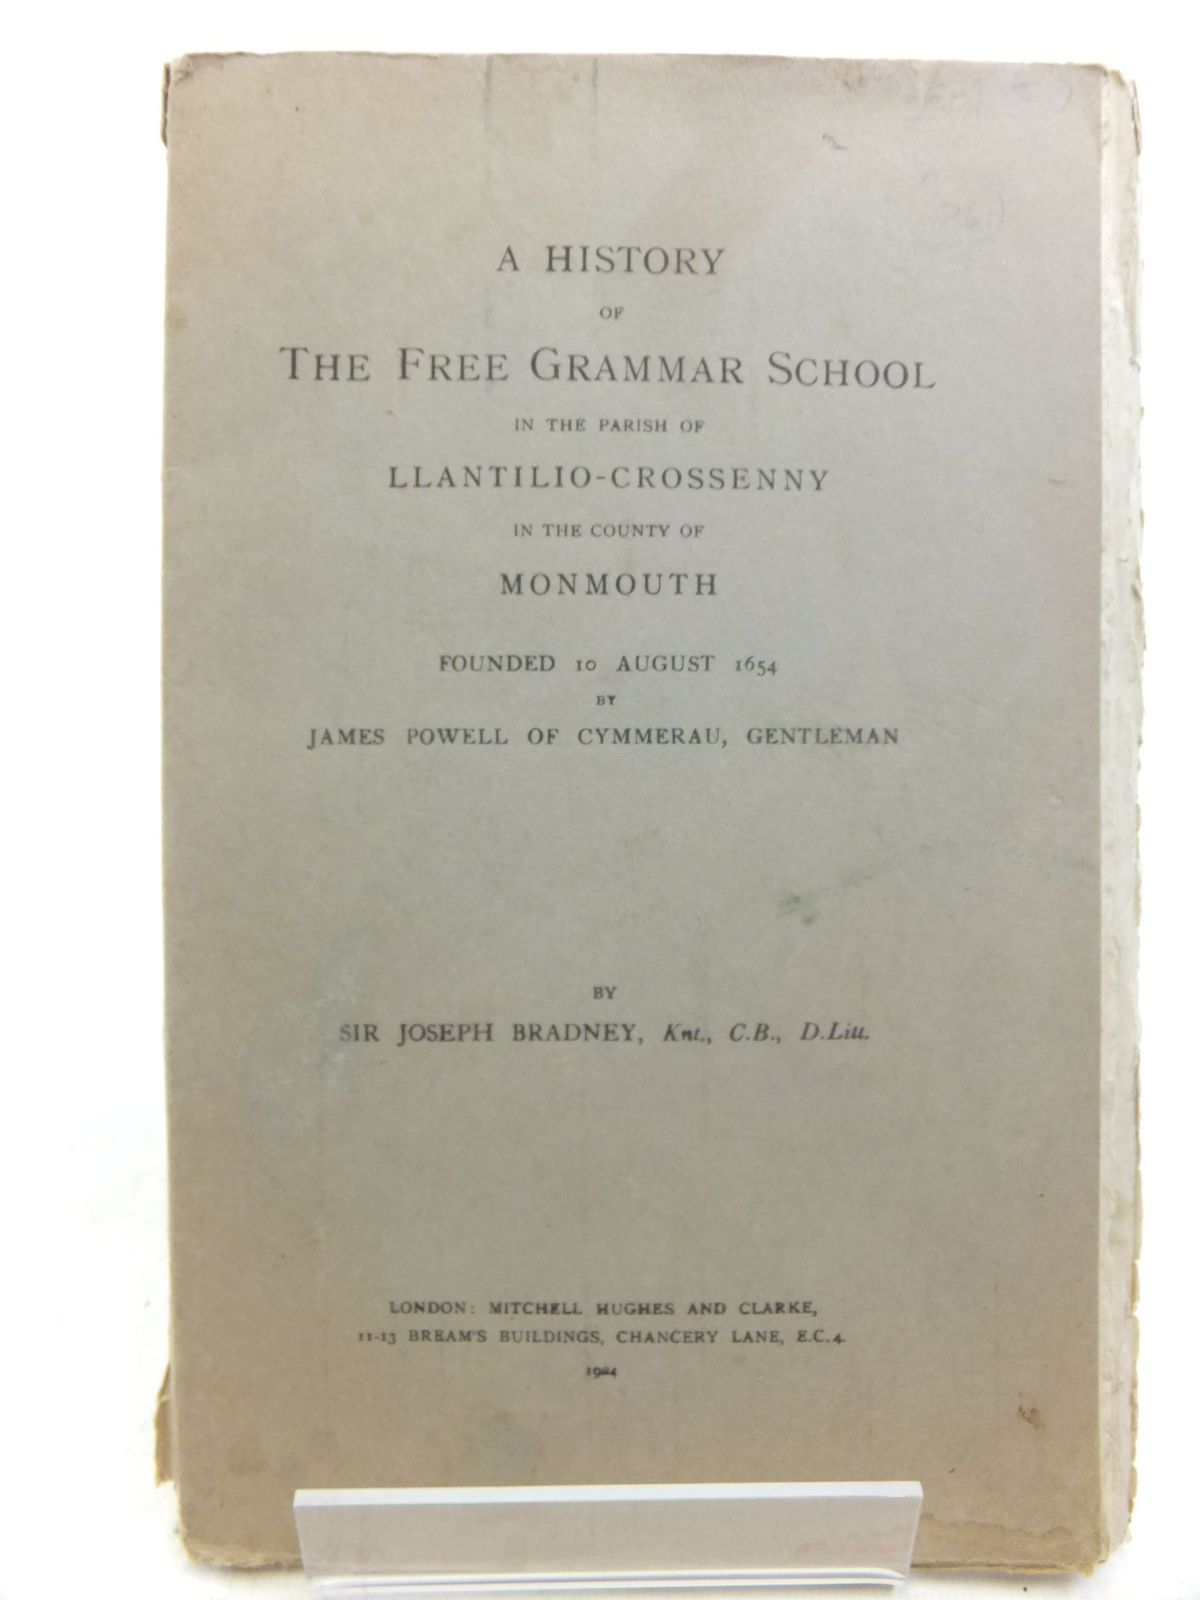 Photo of A HISTORY OF THE FREE GRAMMAR SCHOOL IN THE PARISH OF LLANTILIO-CROSSENNY IN THE COUNTY OF MONMOUTH written by Bradney, Joseph published by Mitchell Hughes and Clarke (STOCK CODE: 1712736)  for sale by Stella & Rose's Books